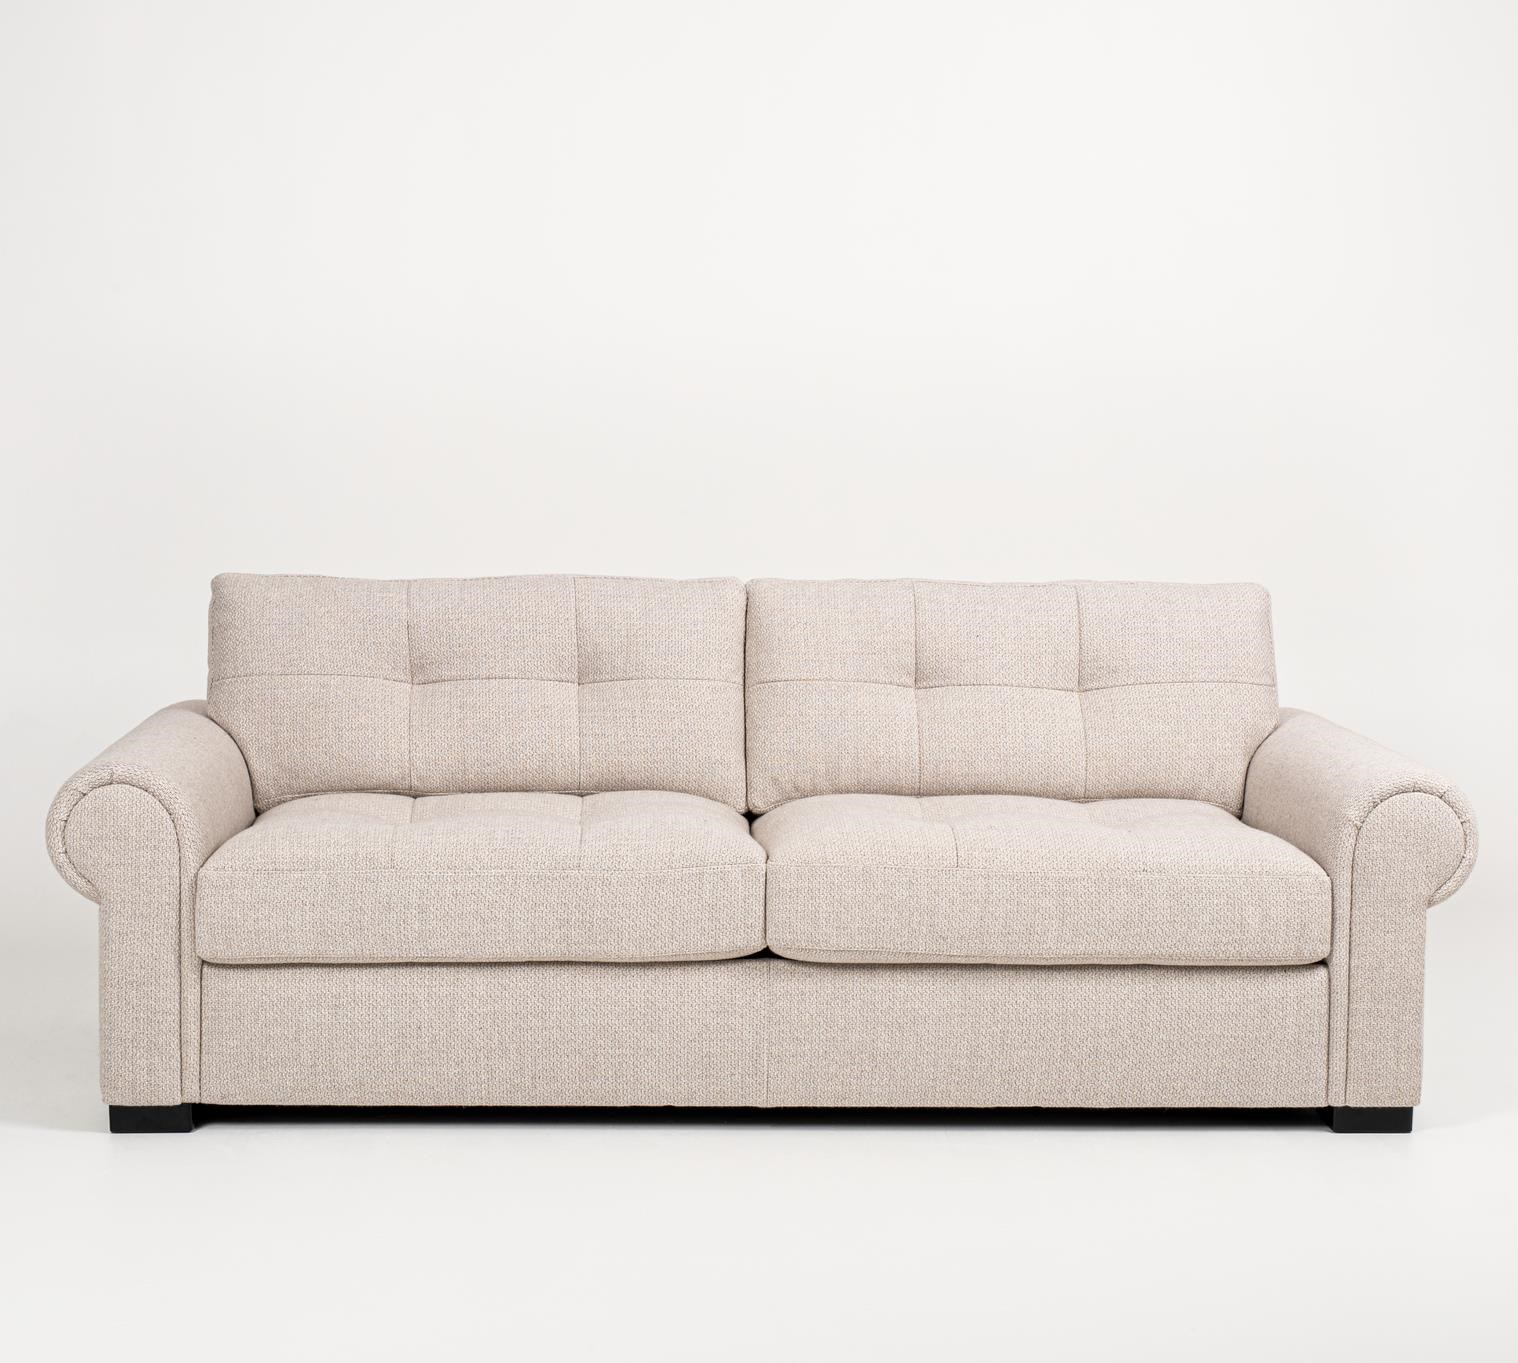 Shell 2-Seat Sofa by American Leather at Baer's Furniture